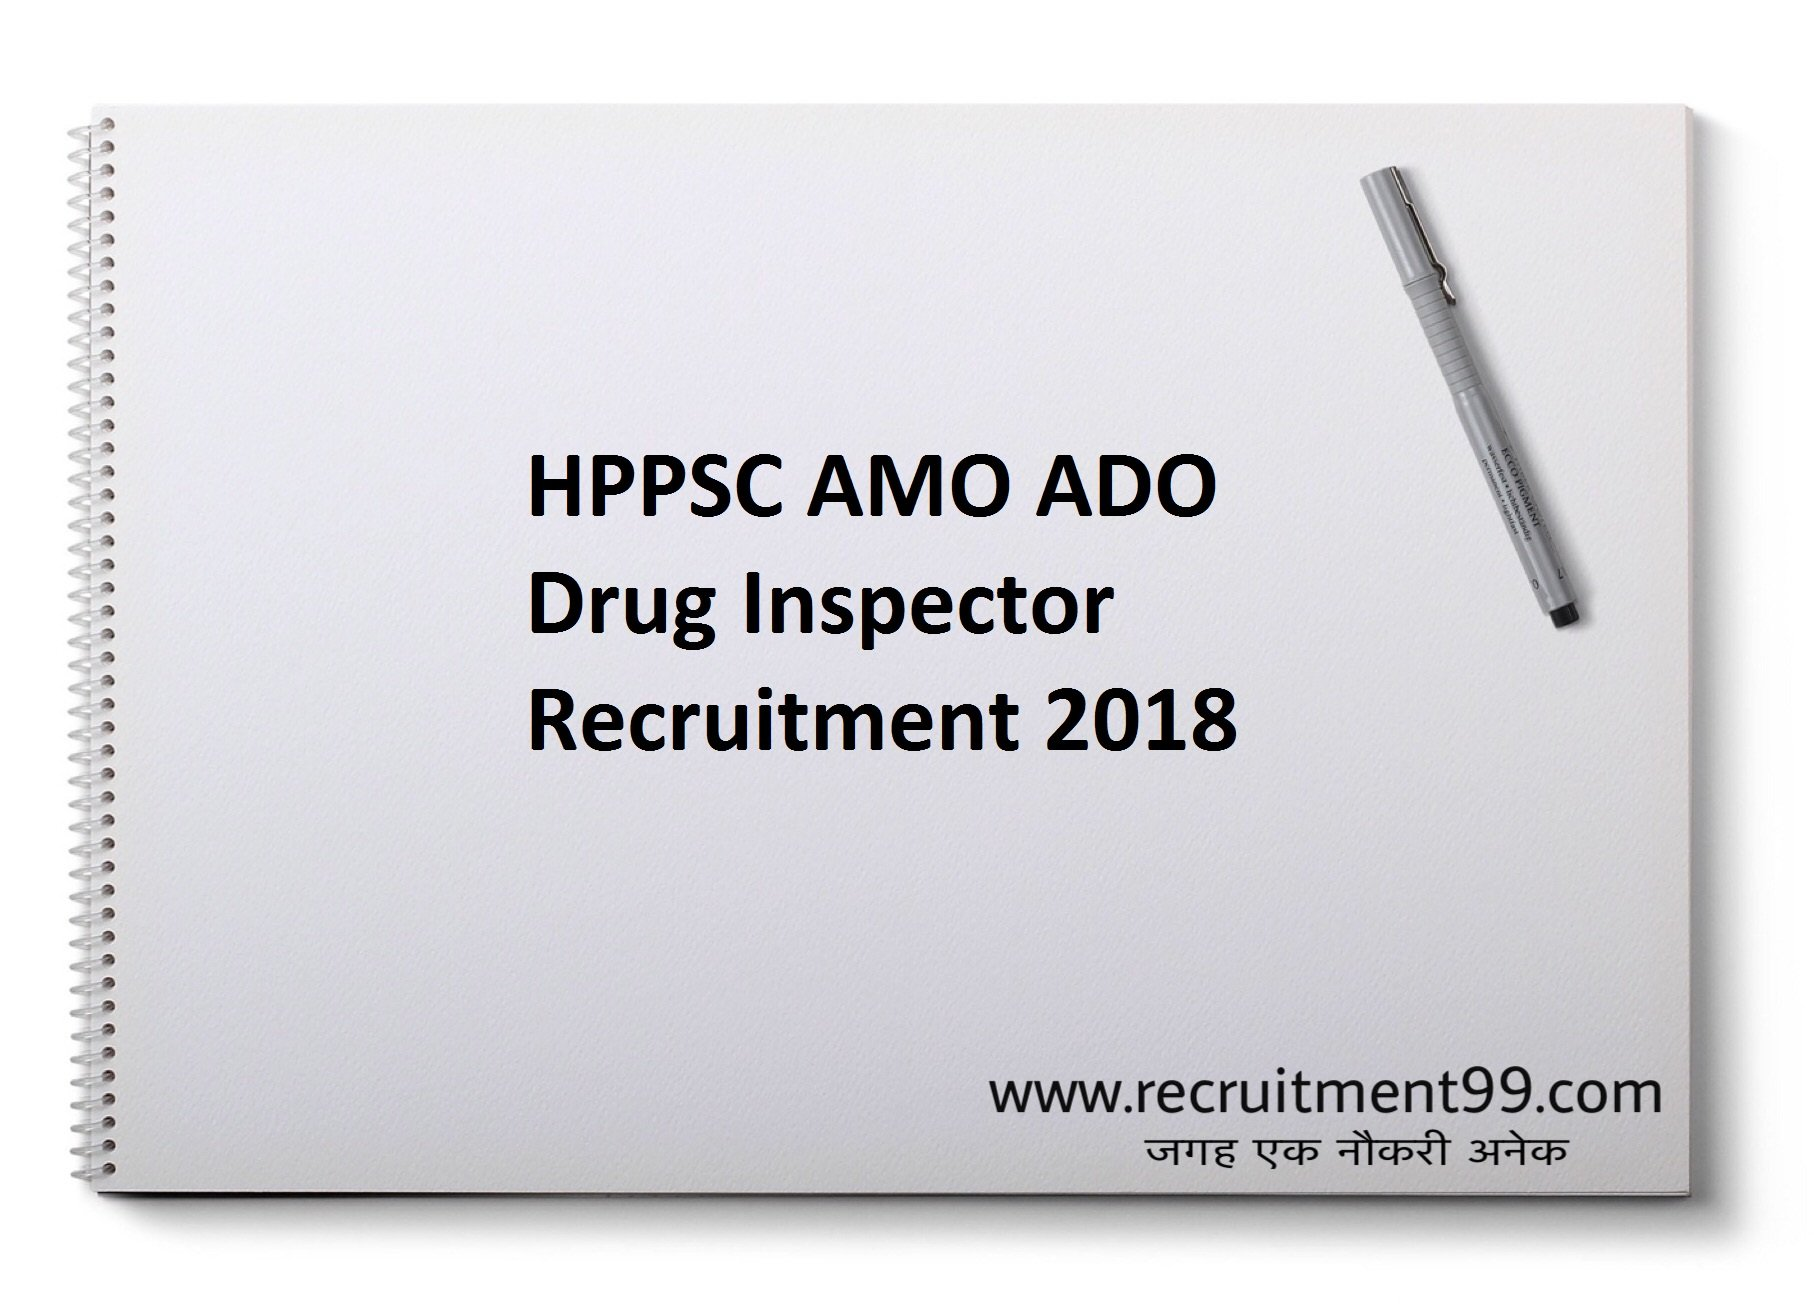 HPPSC AMO ADO Drug Inspector Recruitment Admit Card Result 2018